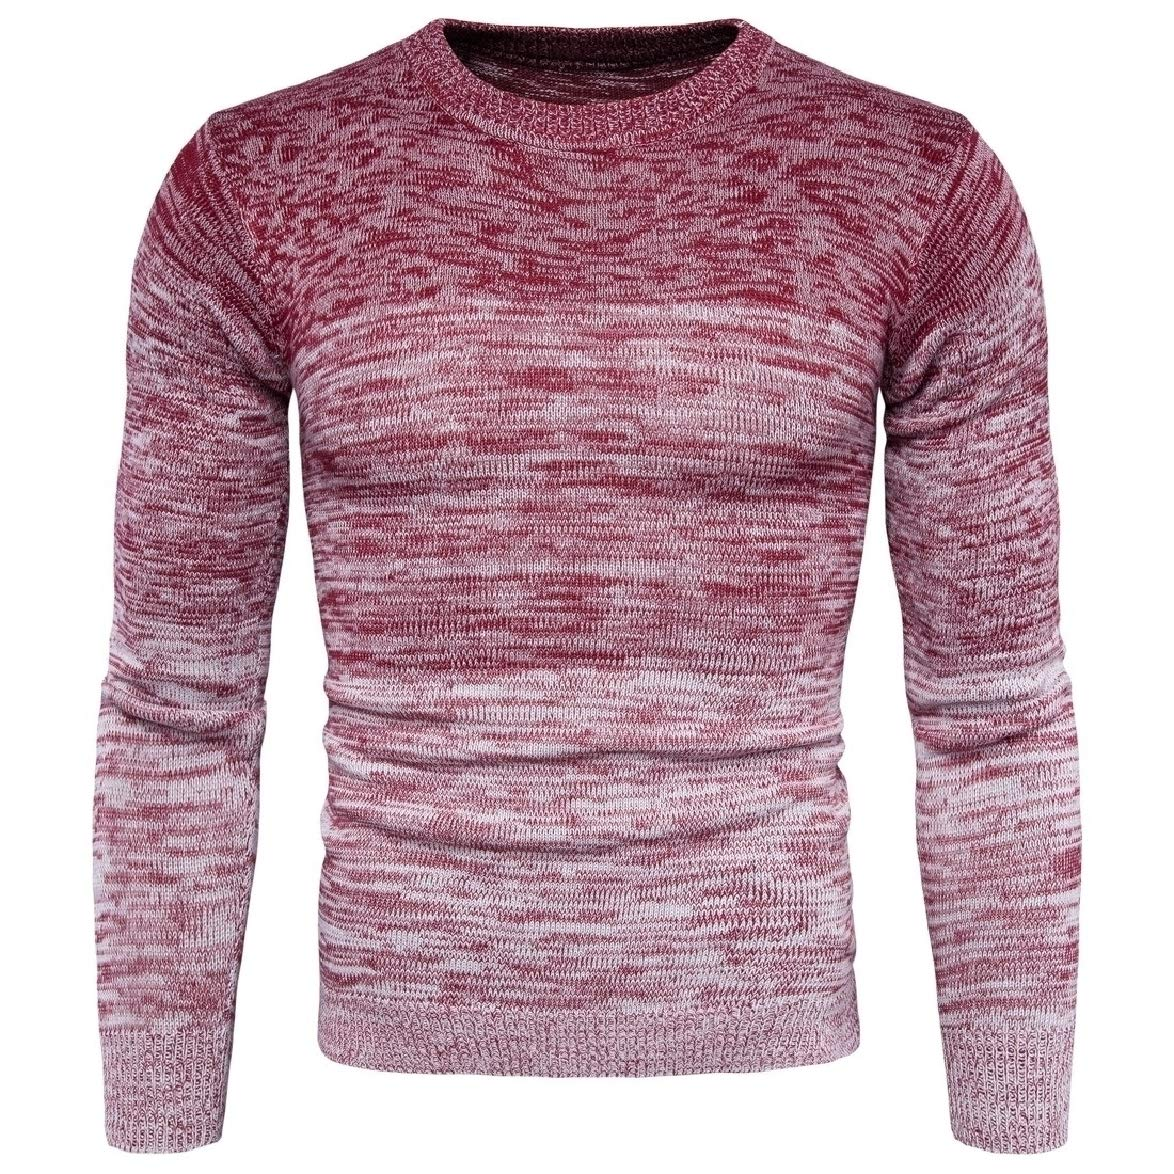 Tingwin Mens Long Sleeve Crew Neck Knit Gradients Casual Pullover Sweater Top